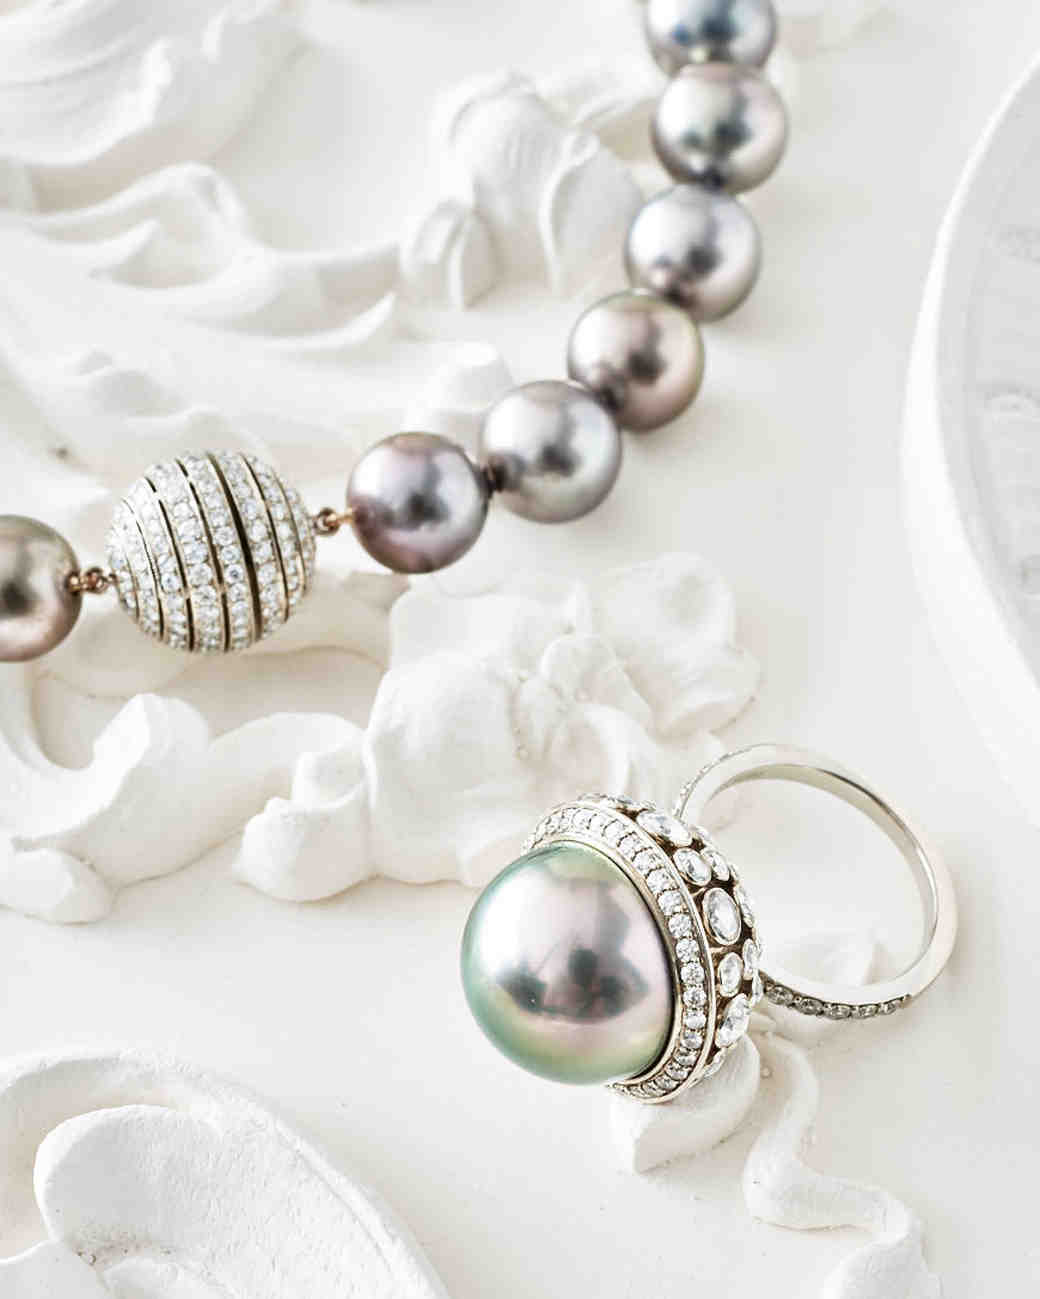 pearls-tiffany-and-co-ring-necklace-0216.jpg